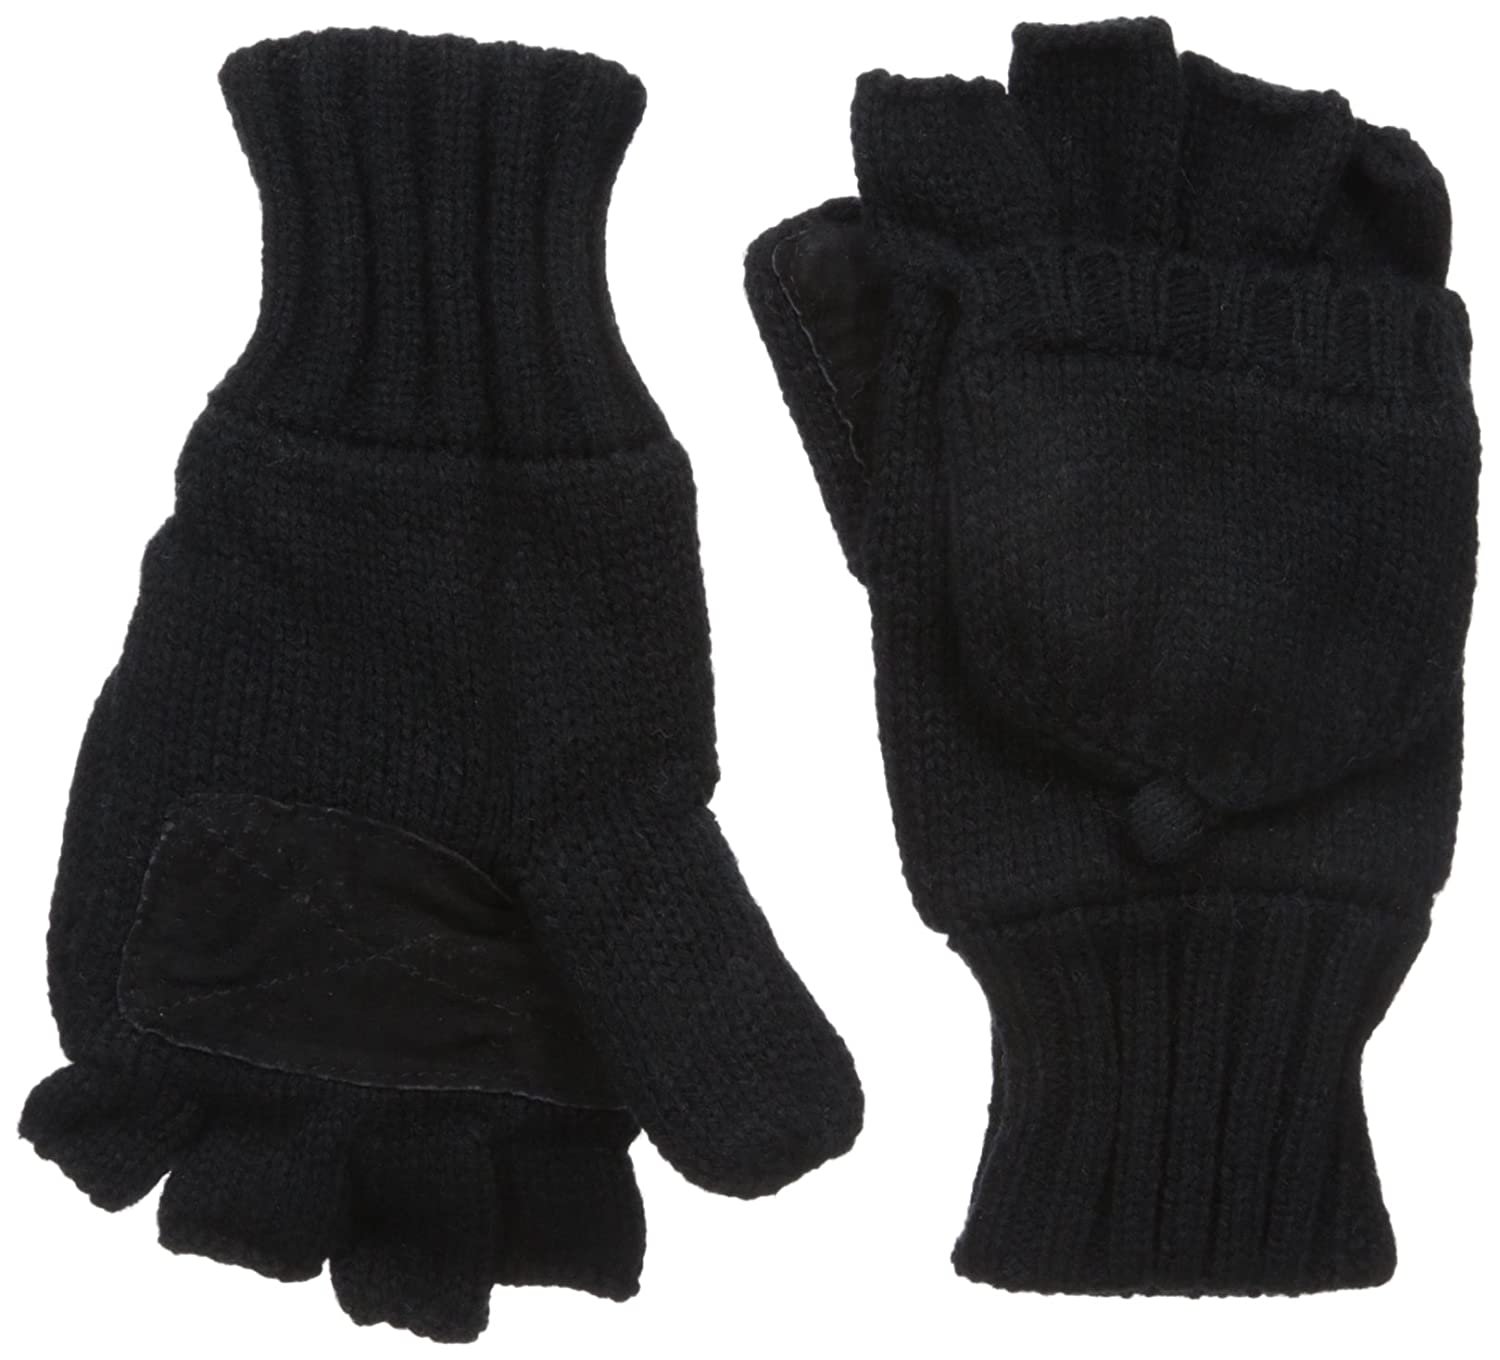 Dockers Mens Convertible Fingerless Glove with Mitten